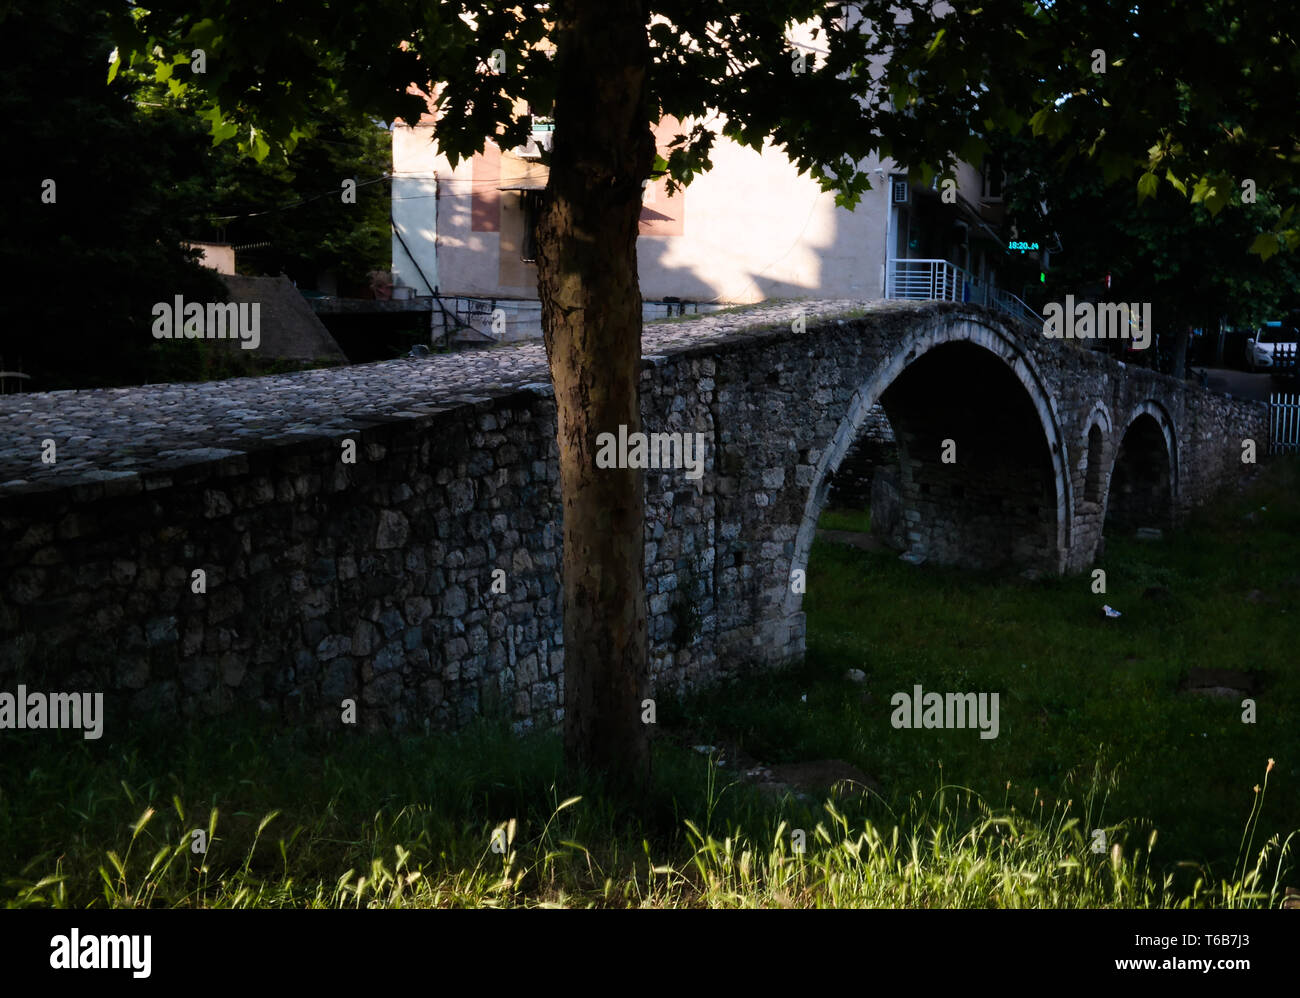 Exterioir view to Tanners Bridge near Lana river in tirana, Albania - Stock Image